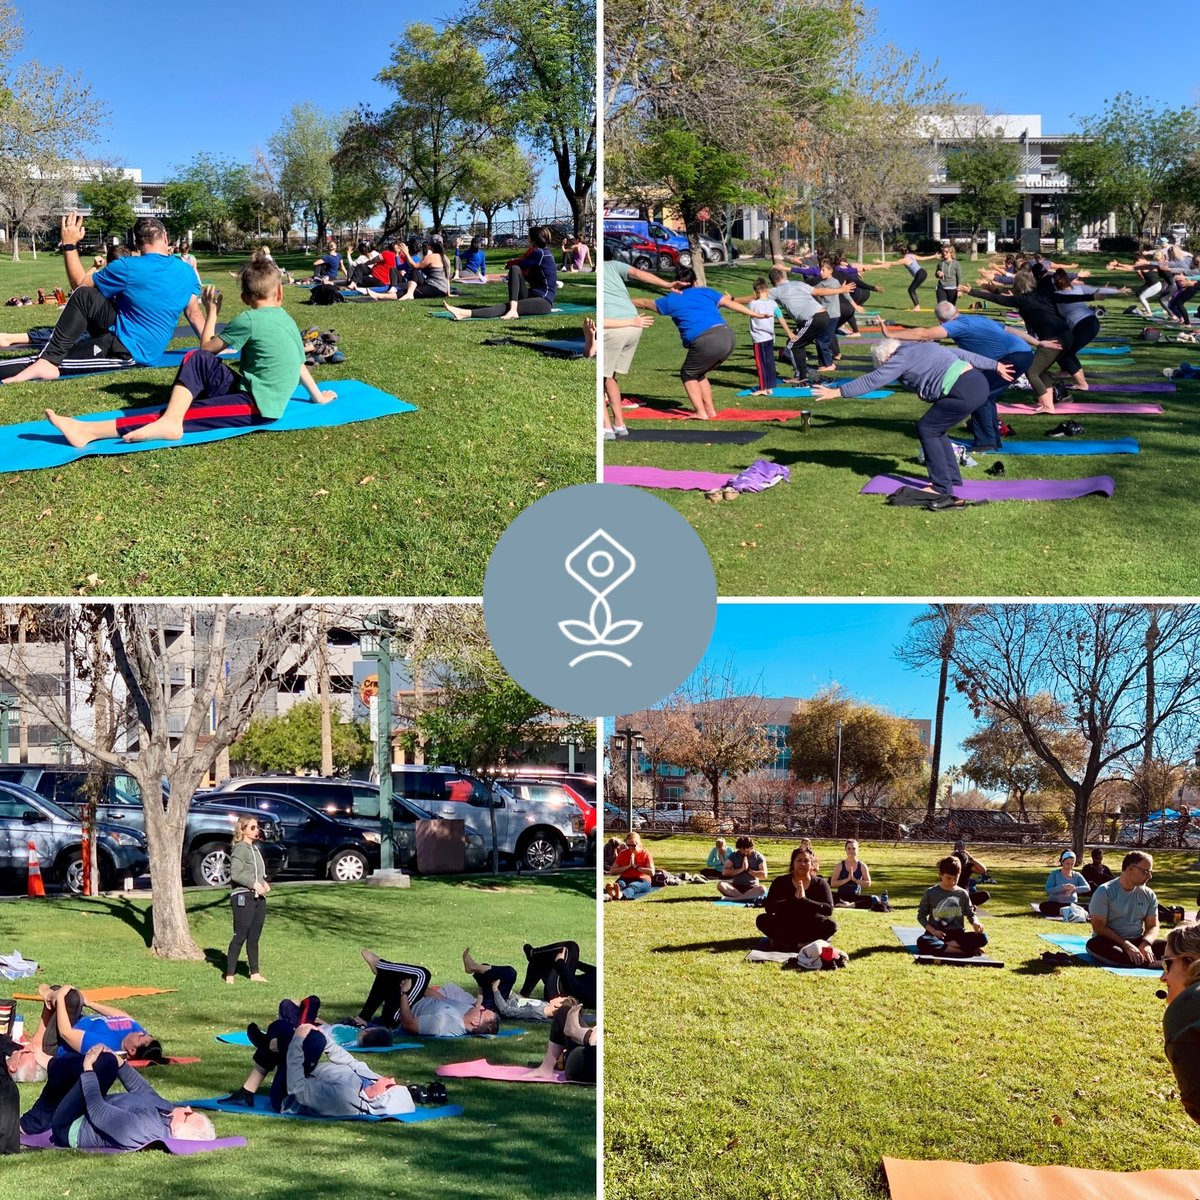 We love our Outdoor Yoga at #DowntownChander Yoga in the Park!    #throwbackeveryday #throwbackmoment #throwbackthurs #throwbackpics #yogasarc  #yogaforeveryoneanywhereanytime  #farmersmarketyoga #farmersmarketfind #outdooryogapractice https://t.co/I8kNg1tYLL